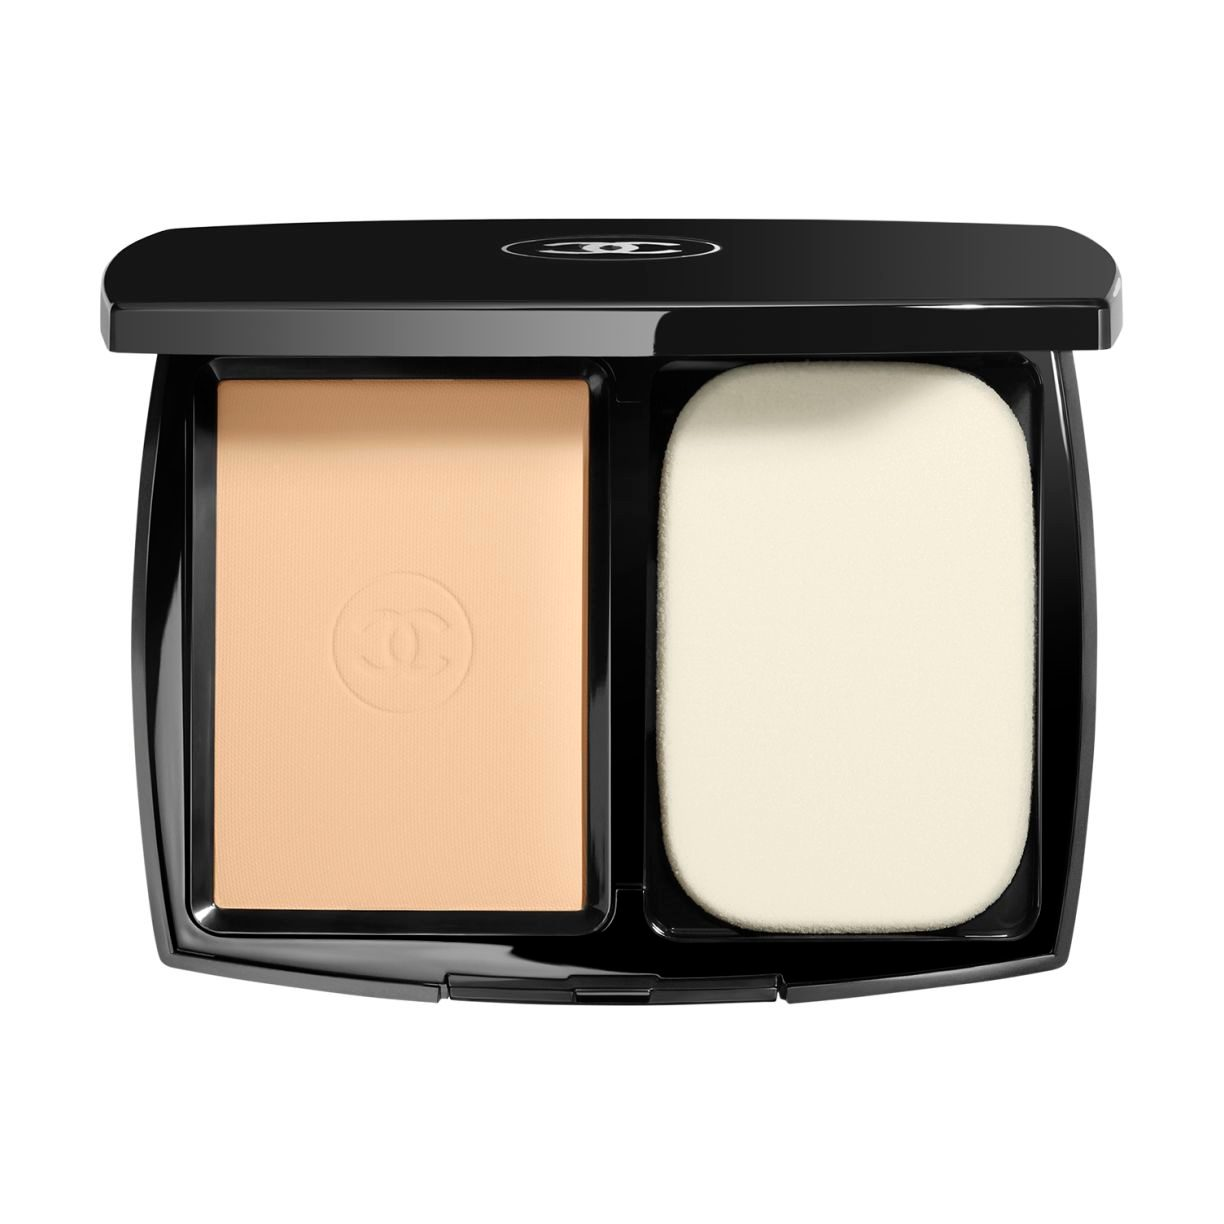 LE TEINT ULTRA TENUE ULTRAWEAR FLAWLESS COMPACT FOUNDATION SPF 15 10 BEIGE 13G